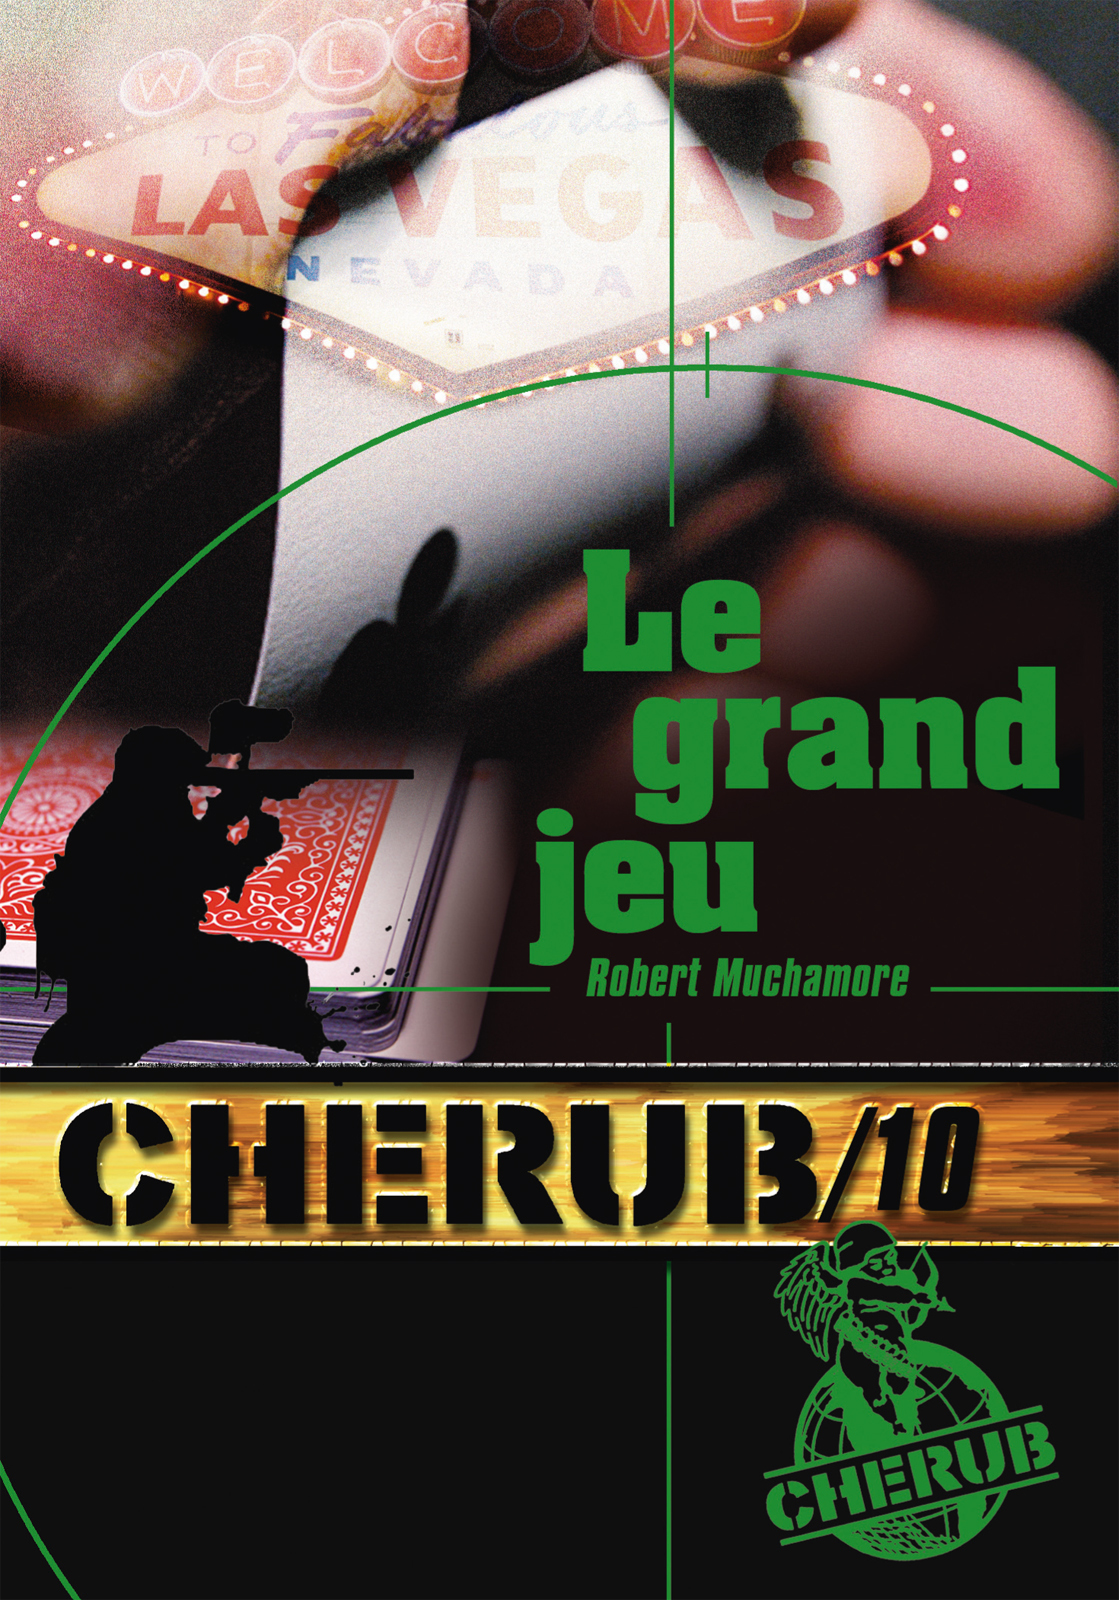 Cherub (Mission 10) - Le grand jeu